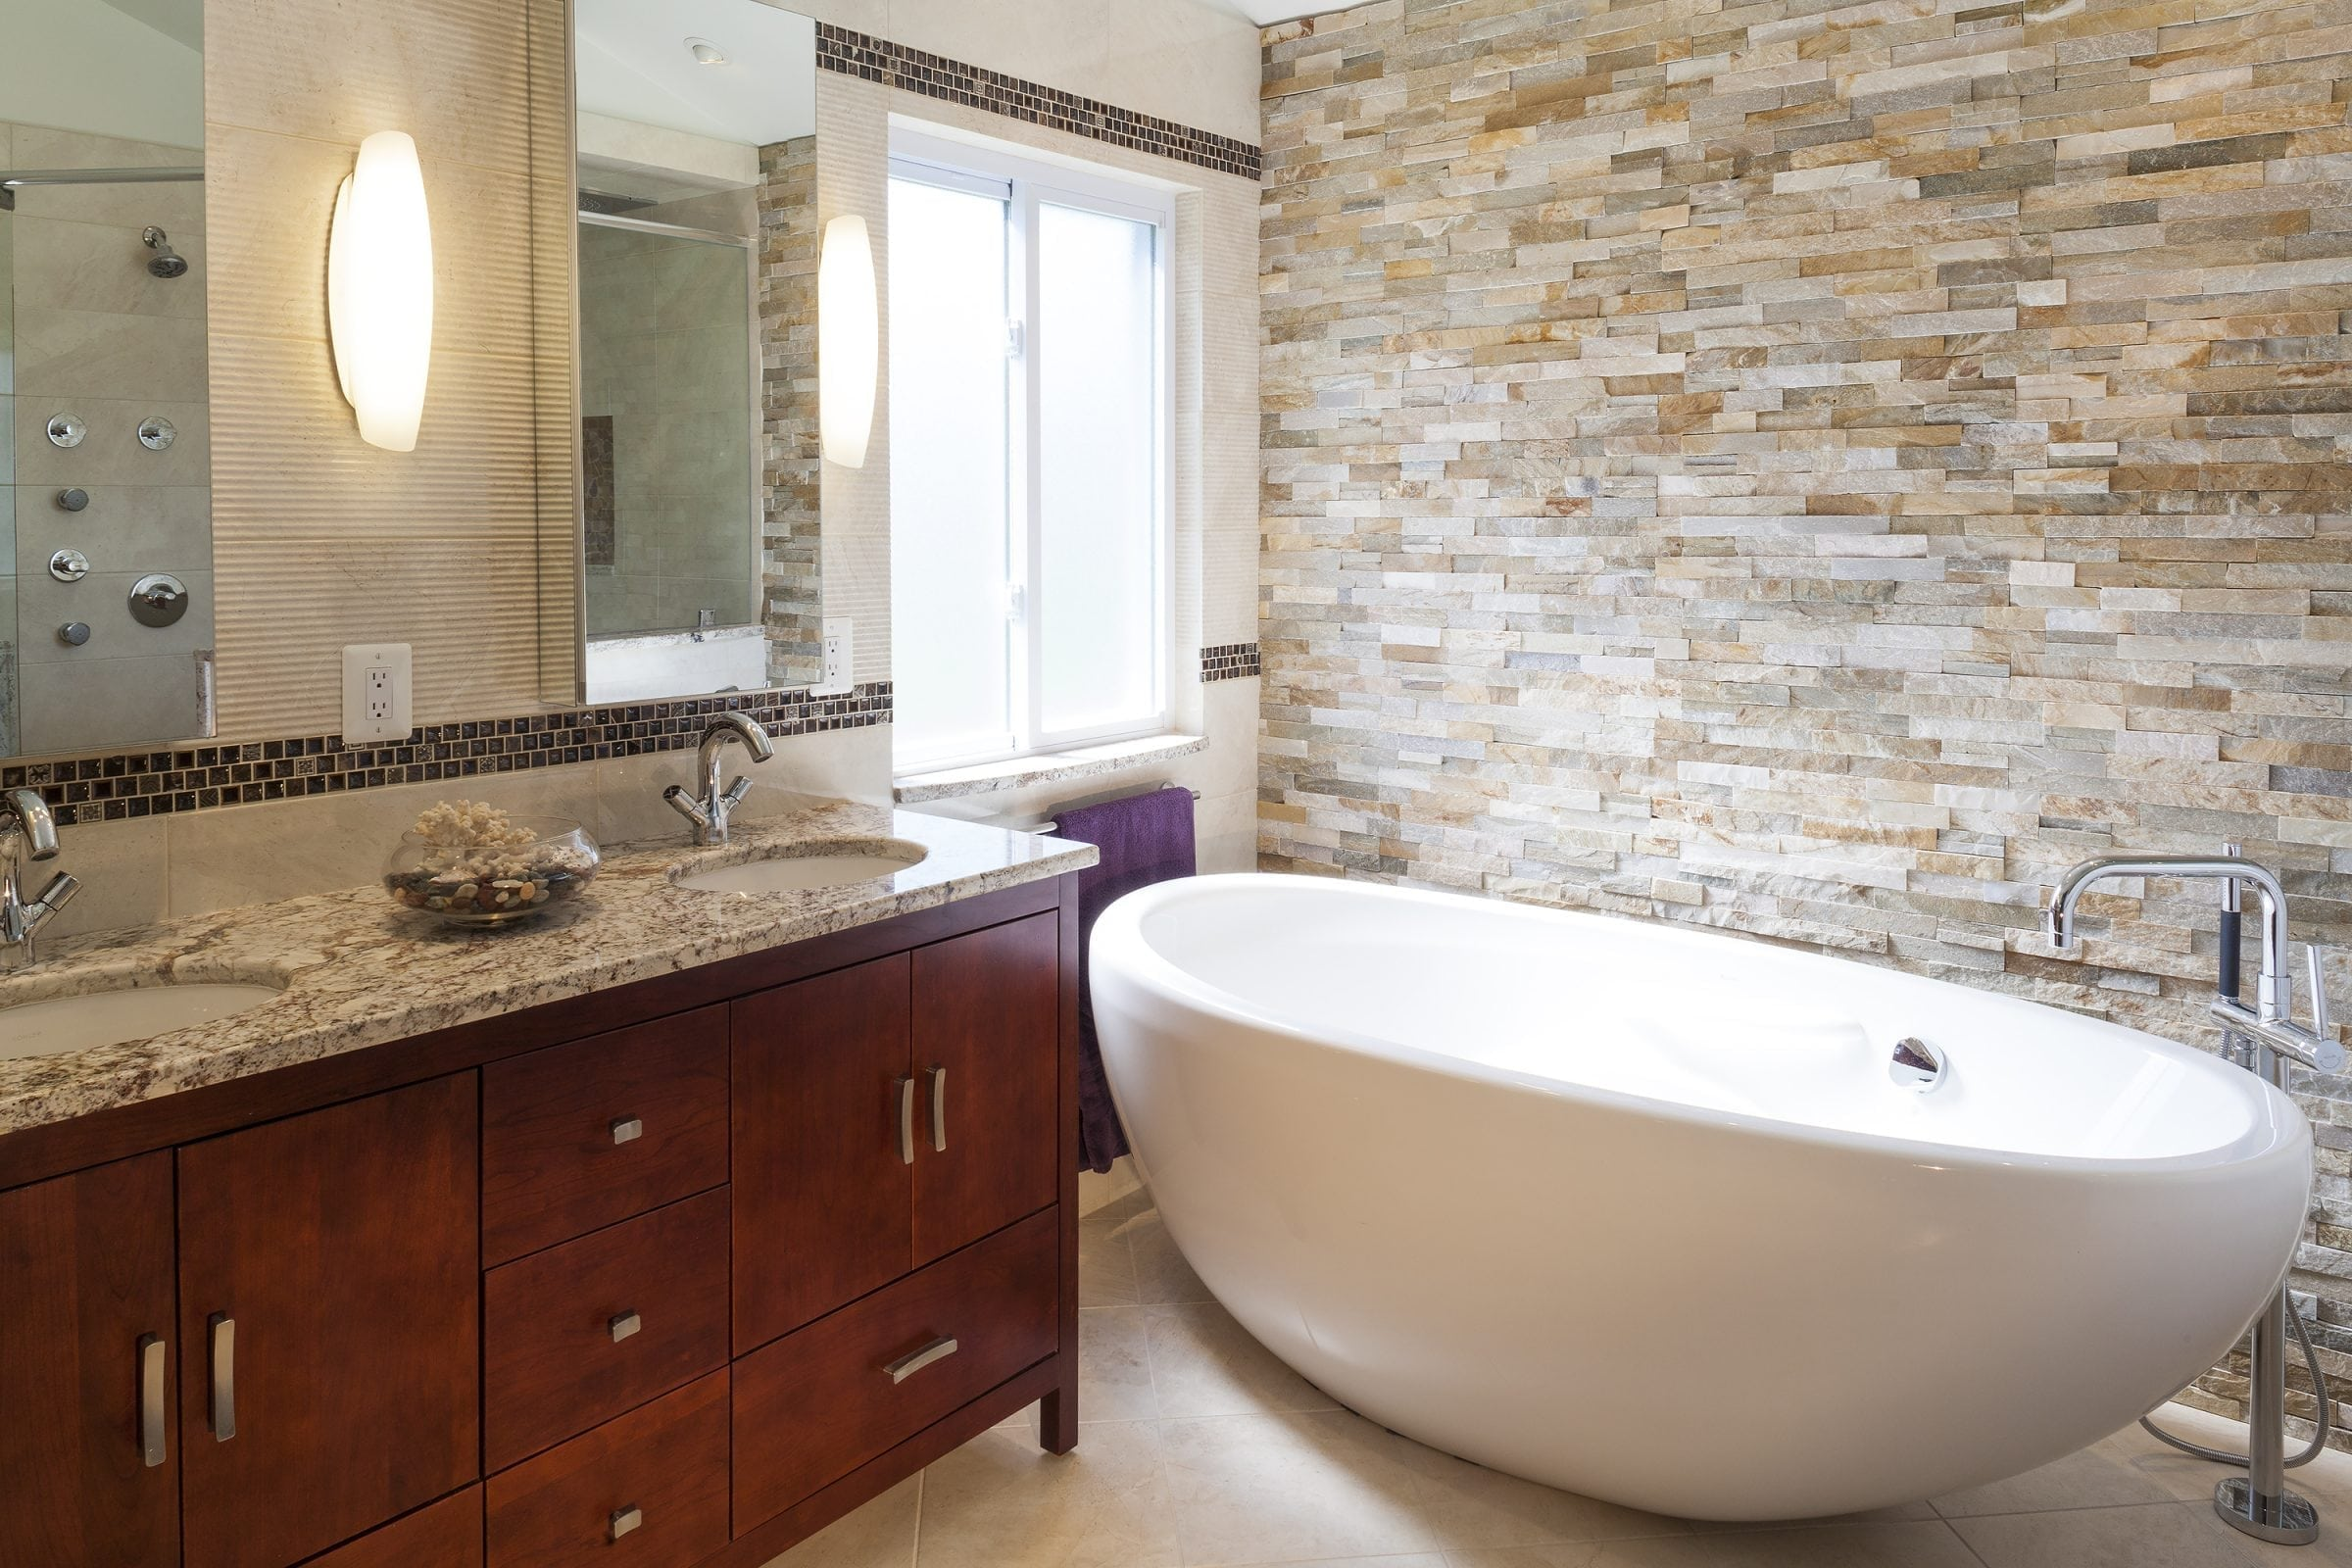 Bathroom With White Tub And Stone Walls